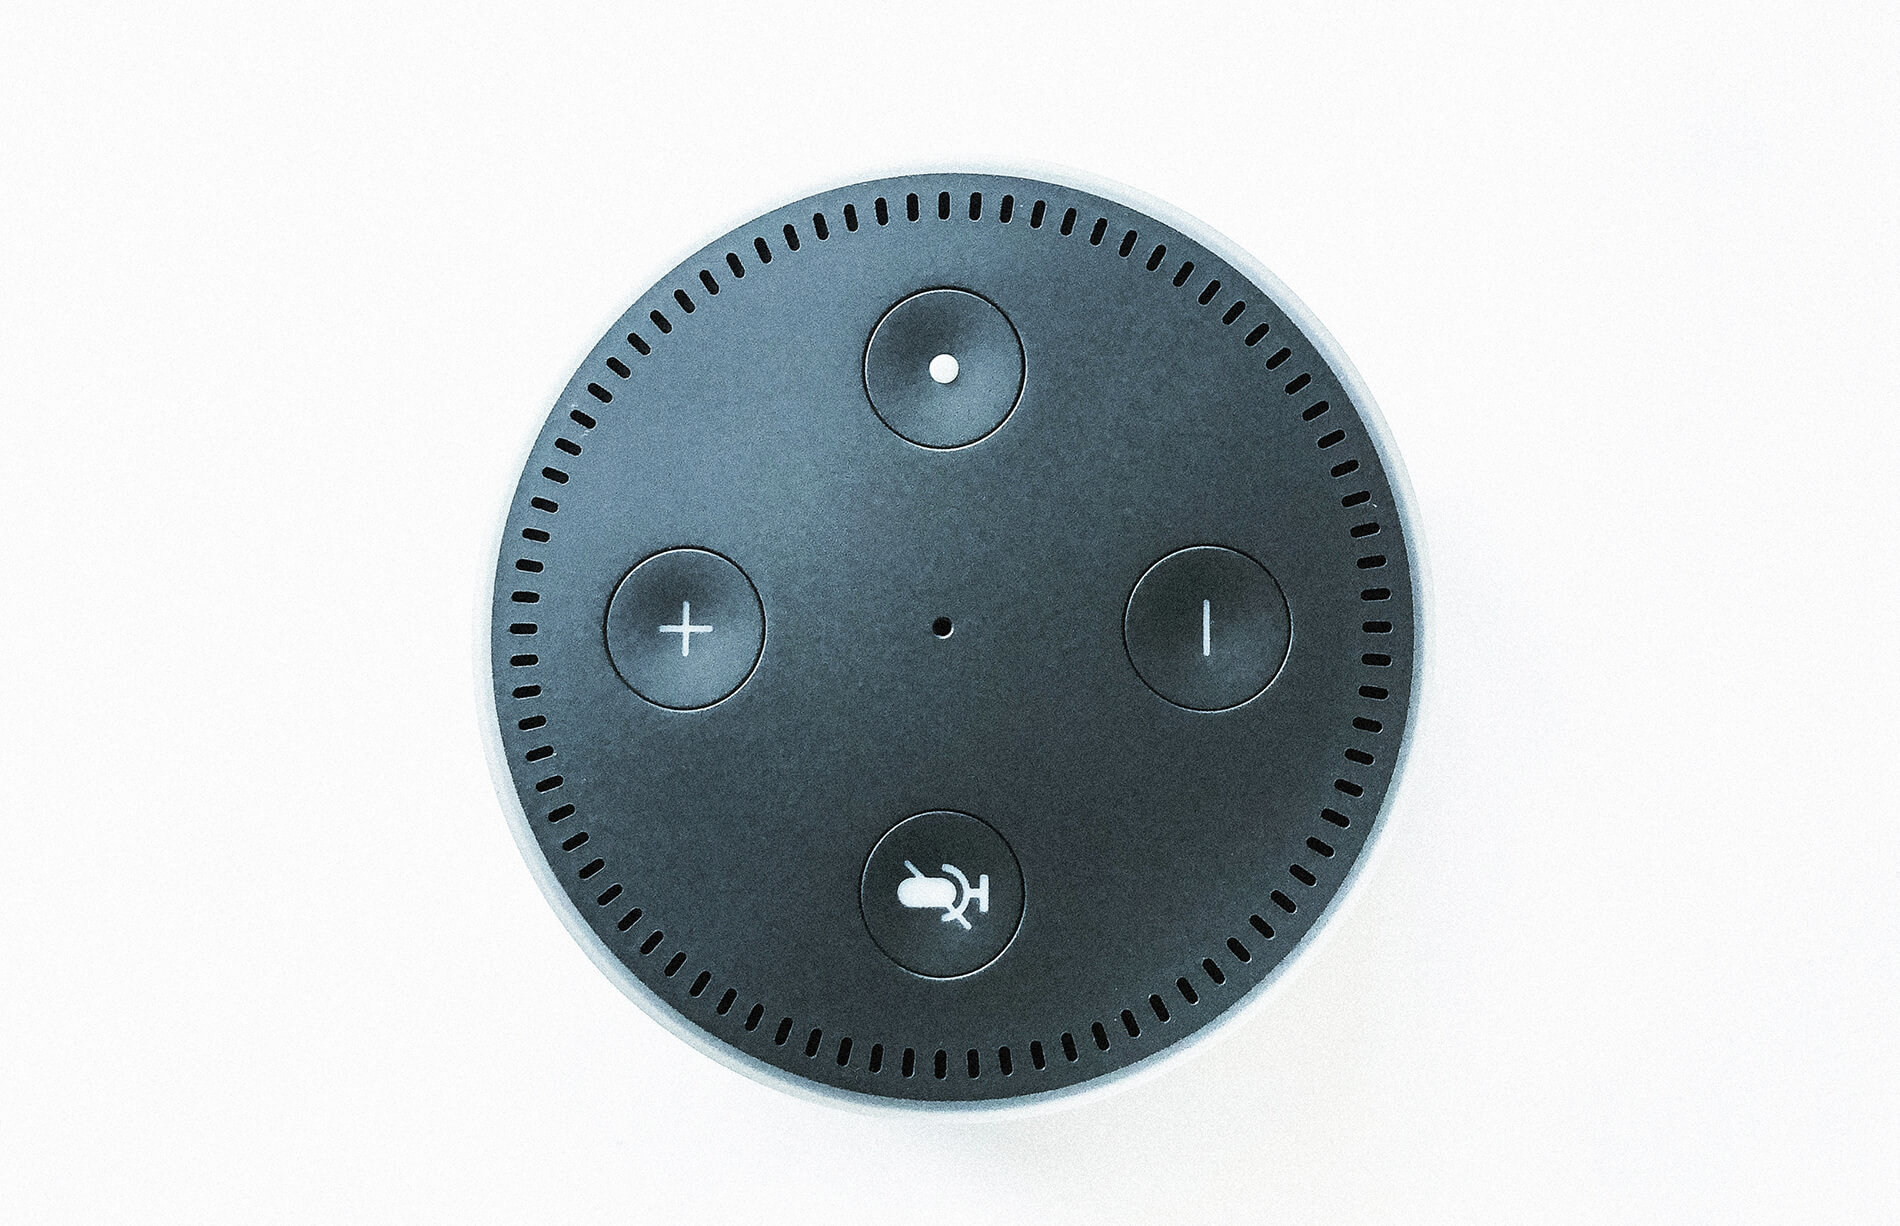 Amazon Alexa top